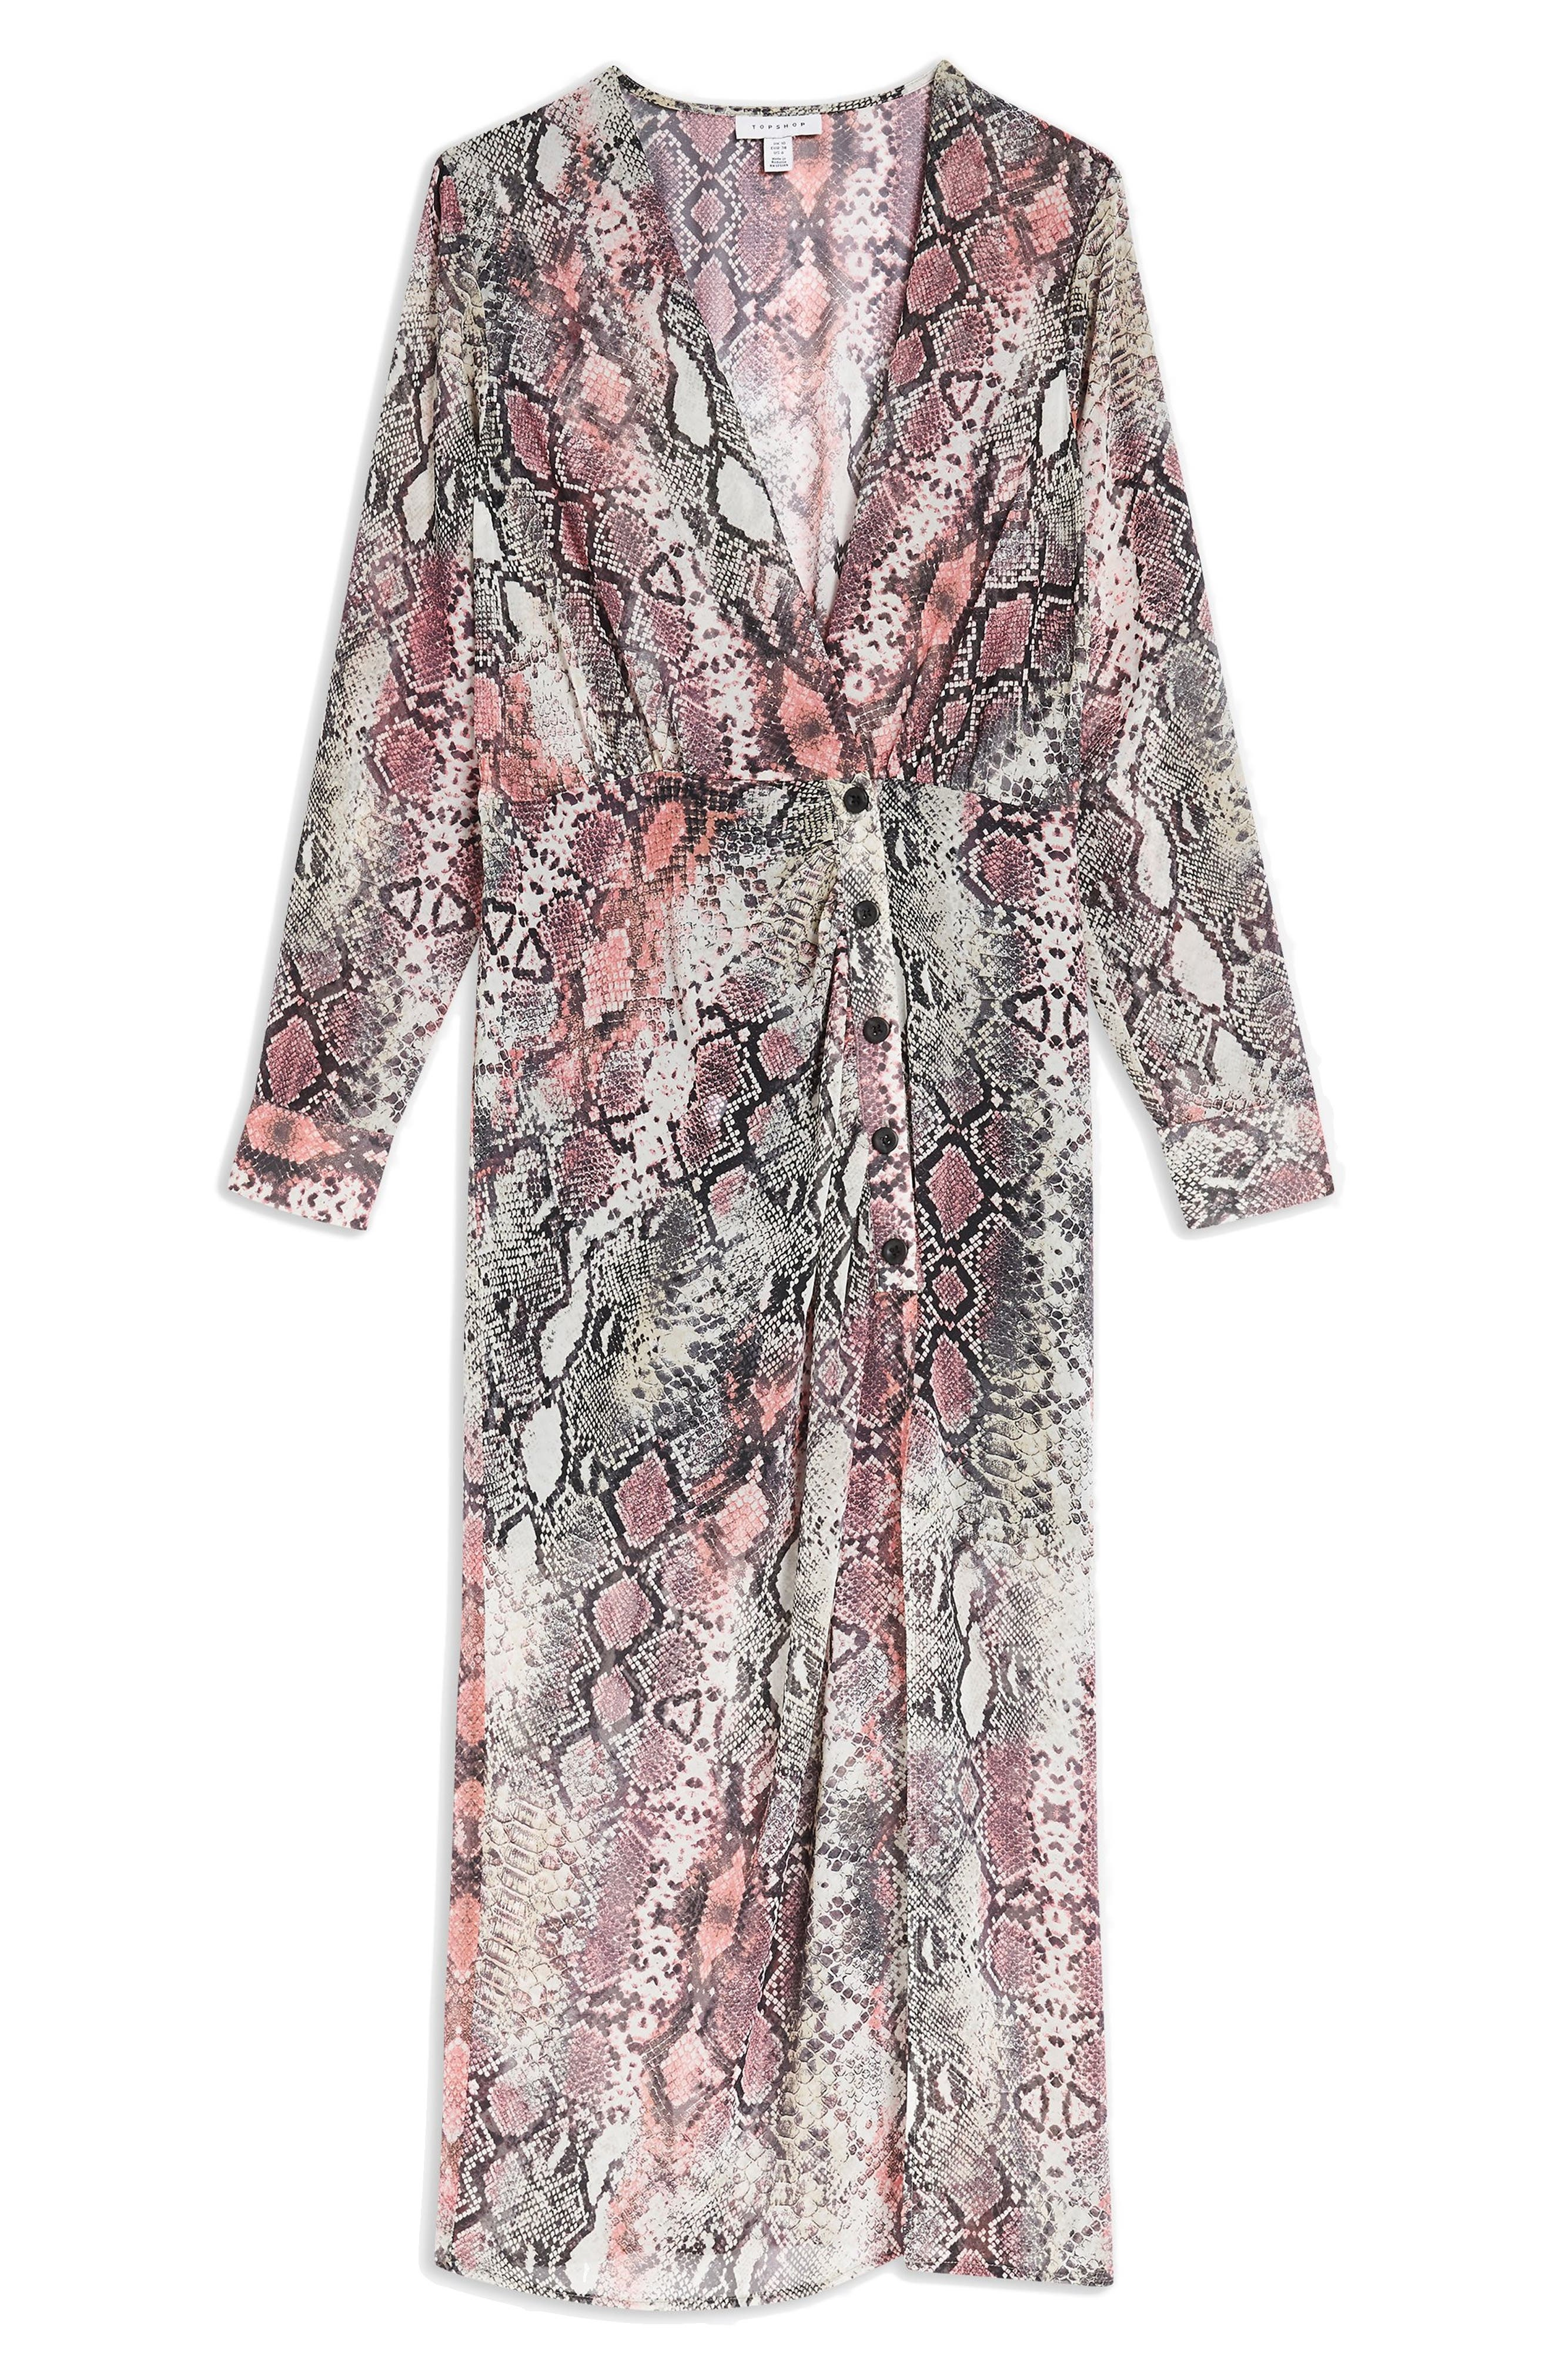 TOPSHOP,                             Snake Print Chiffon Midi Dress,                             Alternate thumbnail 3, color,                             PINK